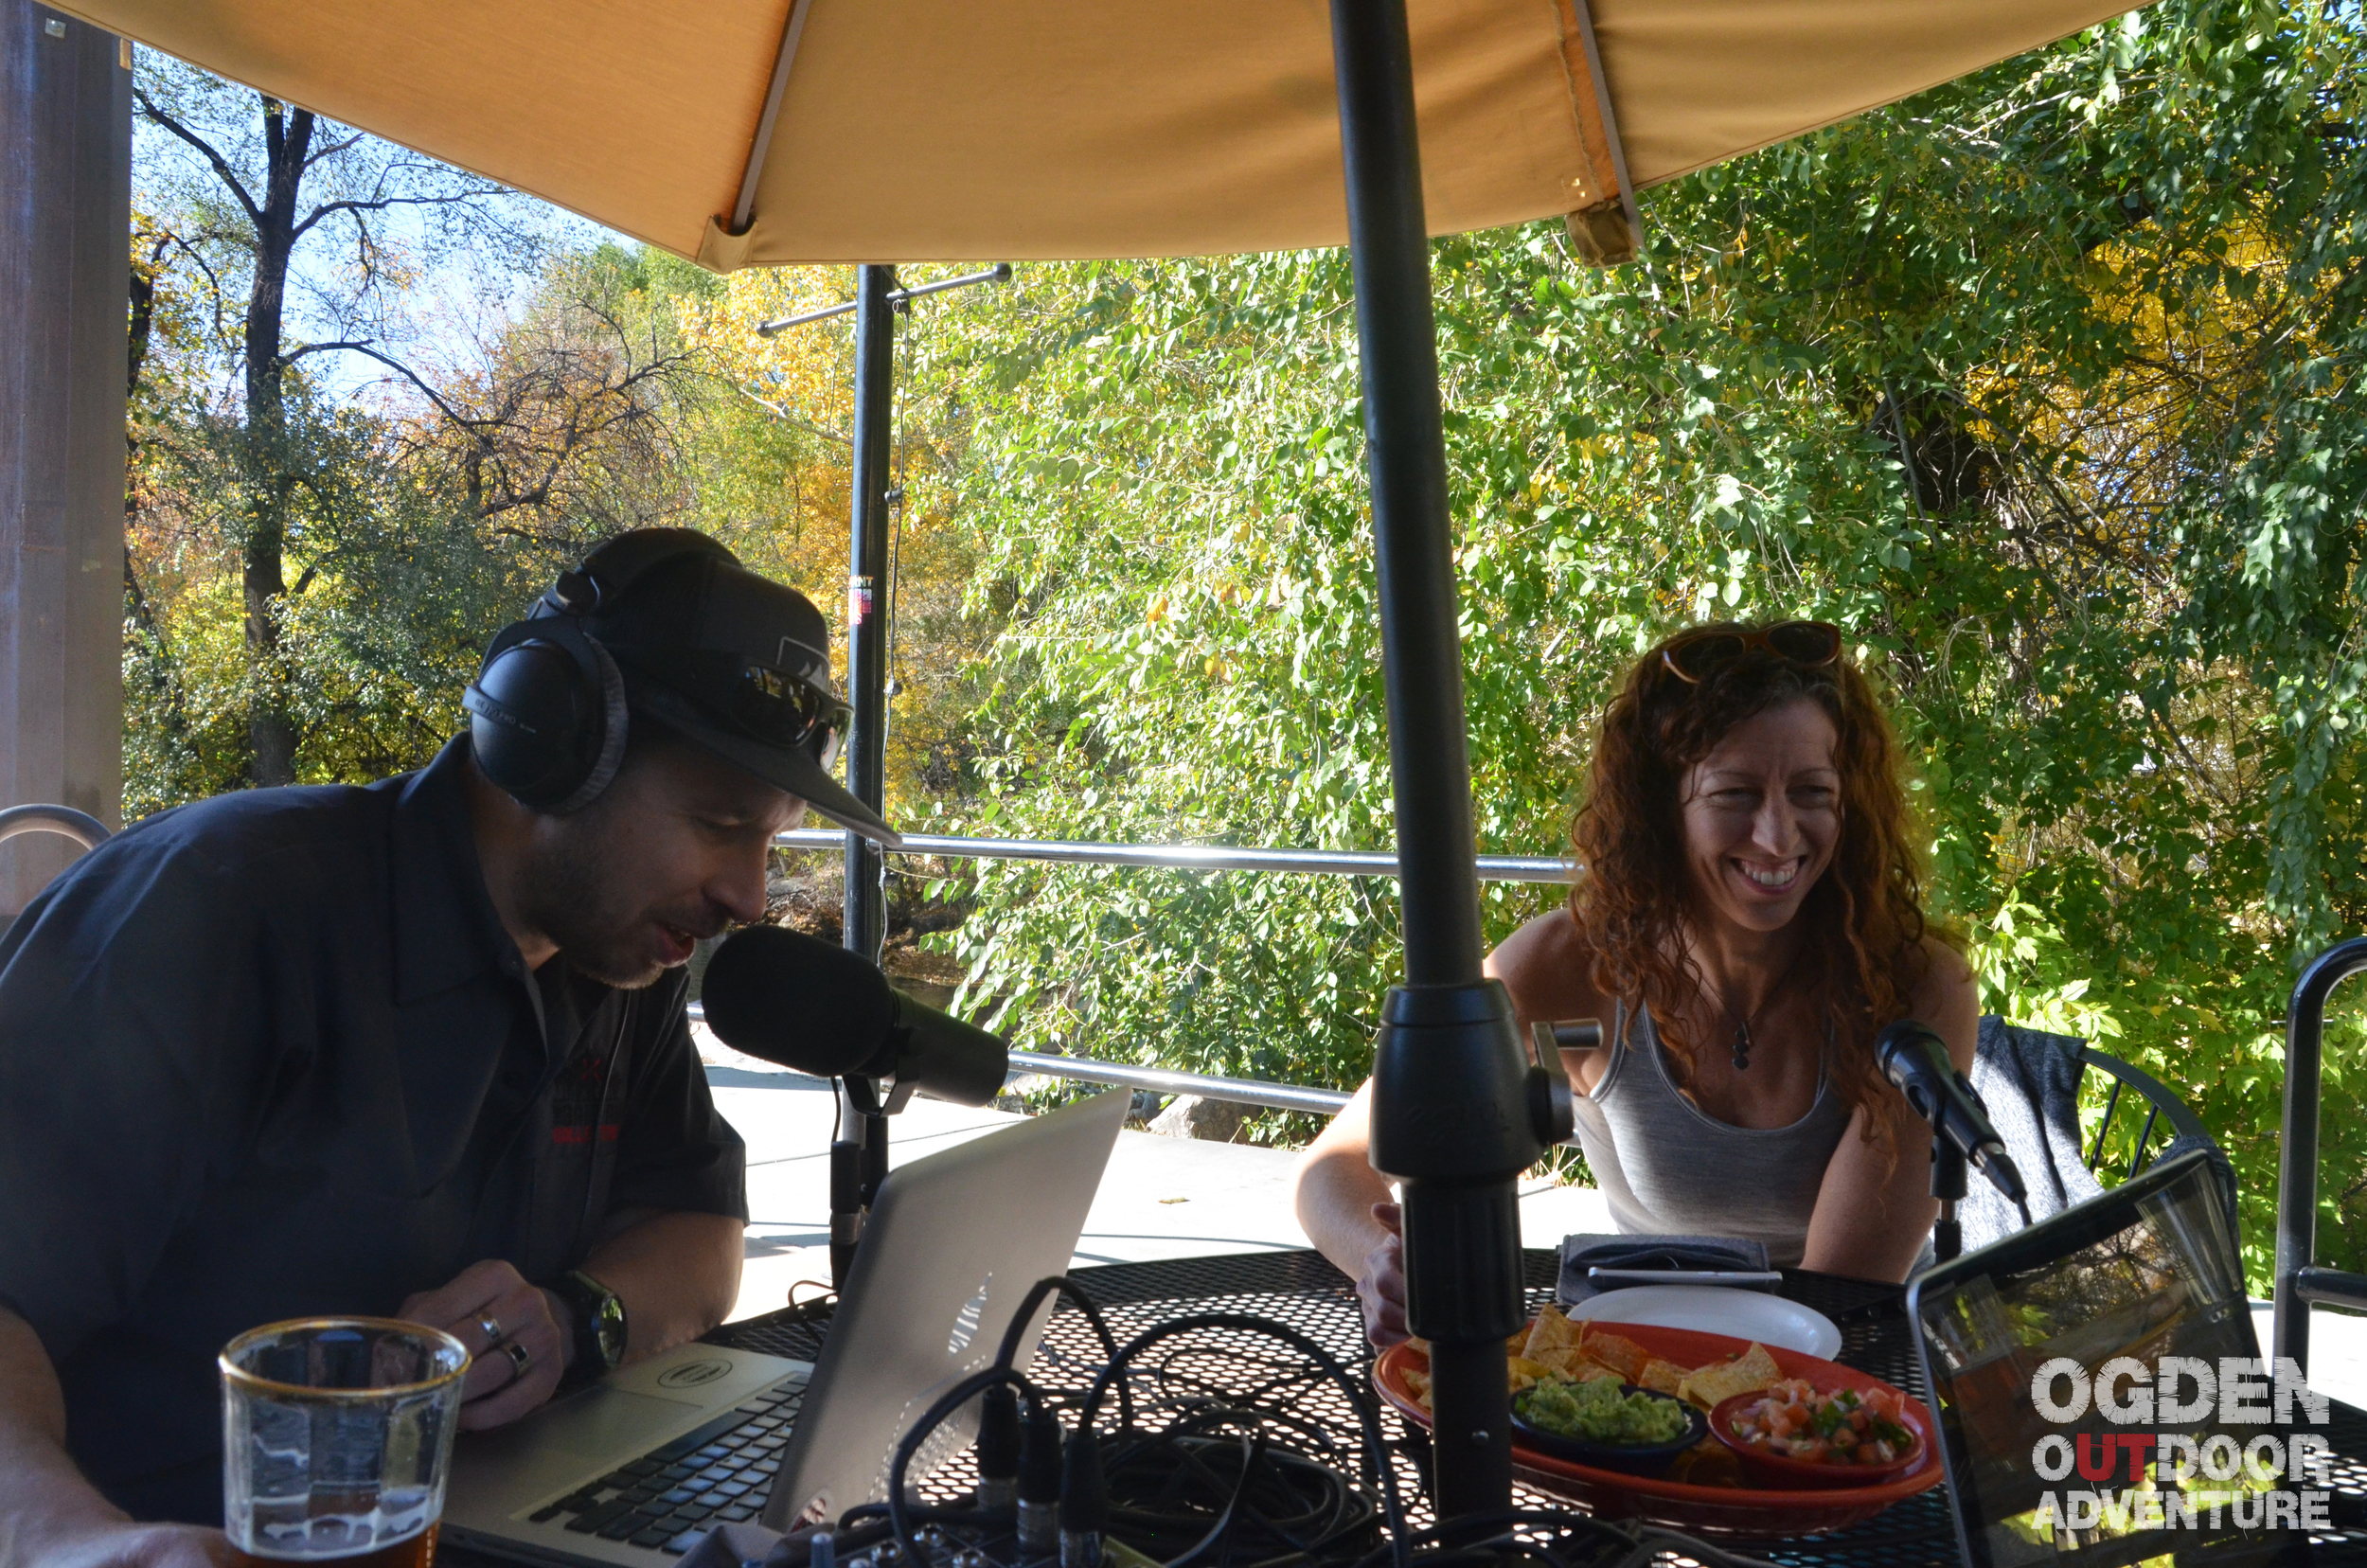 Maggie Smith-Odette chatting climbing, training, and yoga on the Ogden Outdoor Adventure Show.